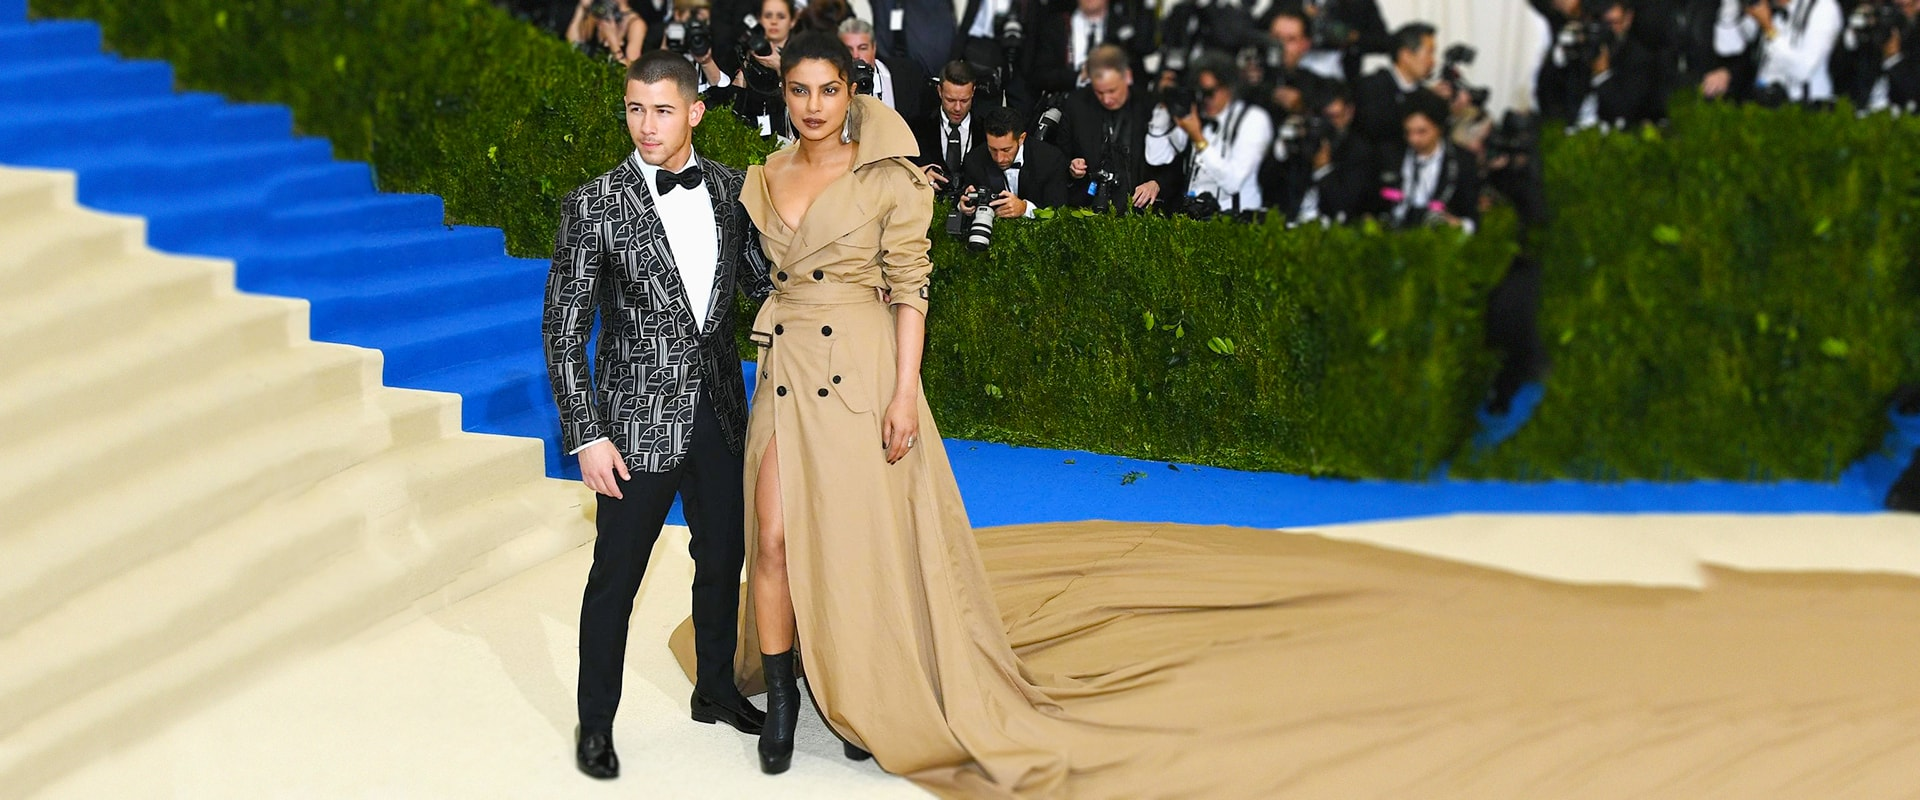 Nick Jonas Priyanka And Other Celebs Who Dated Despite Huge Age